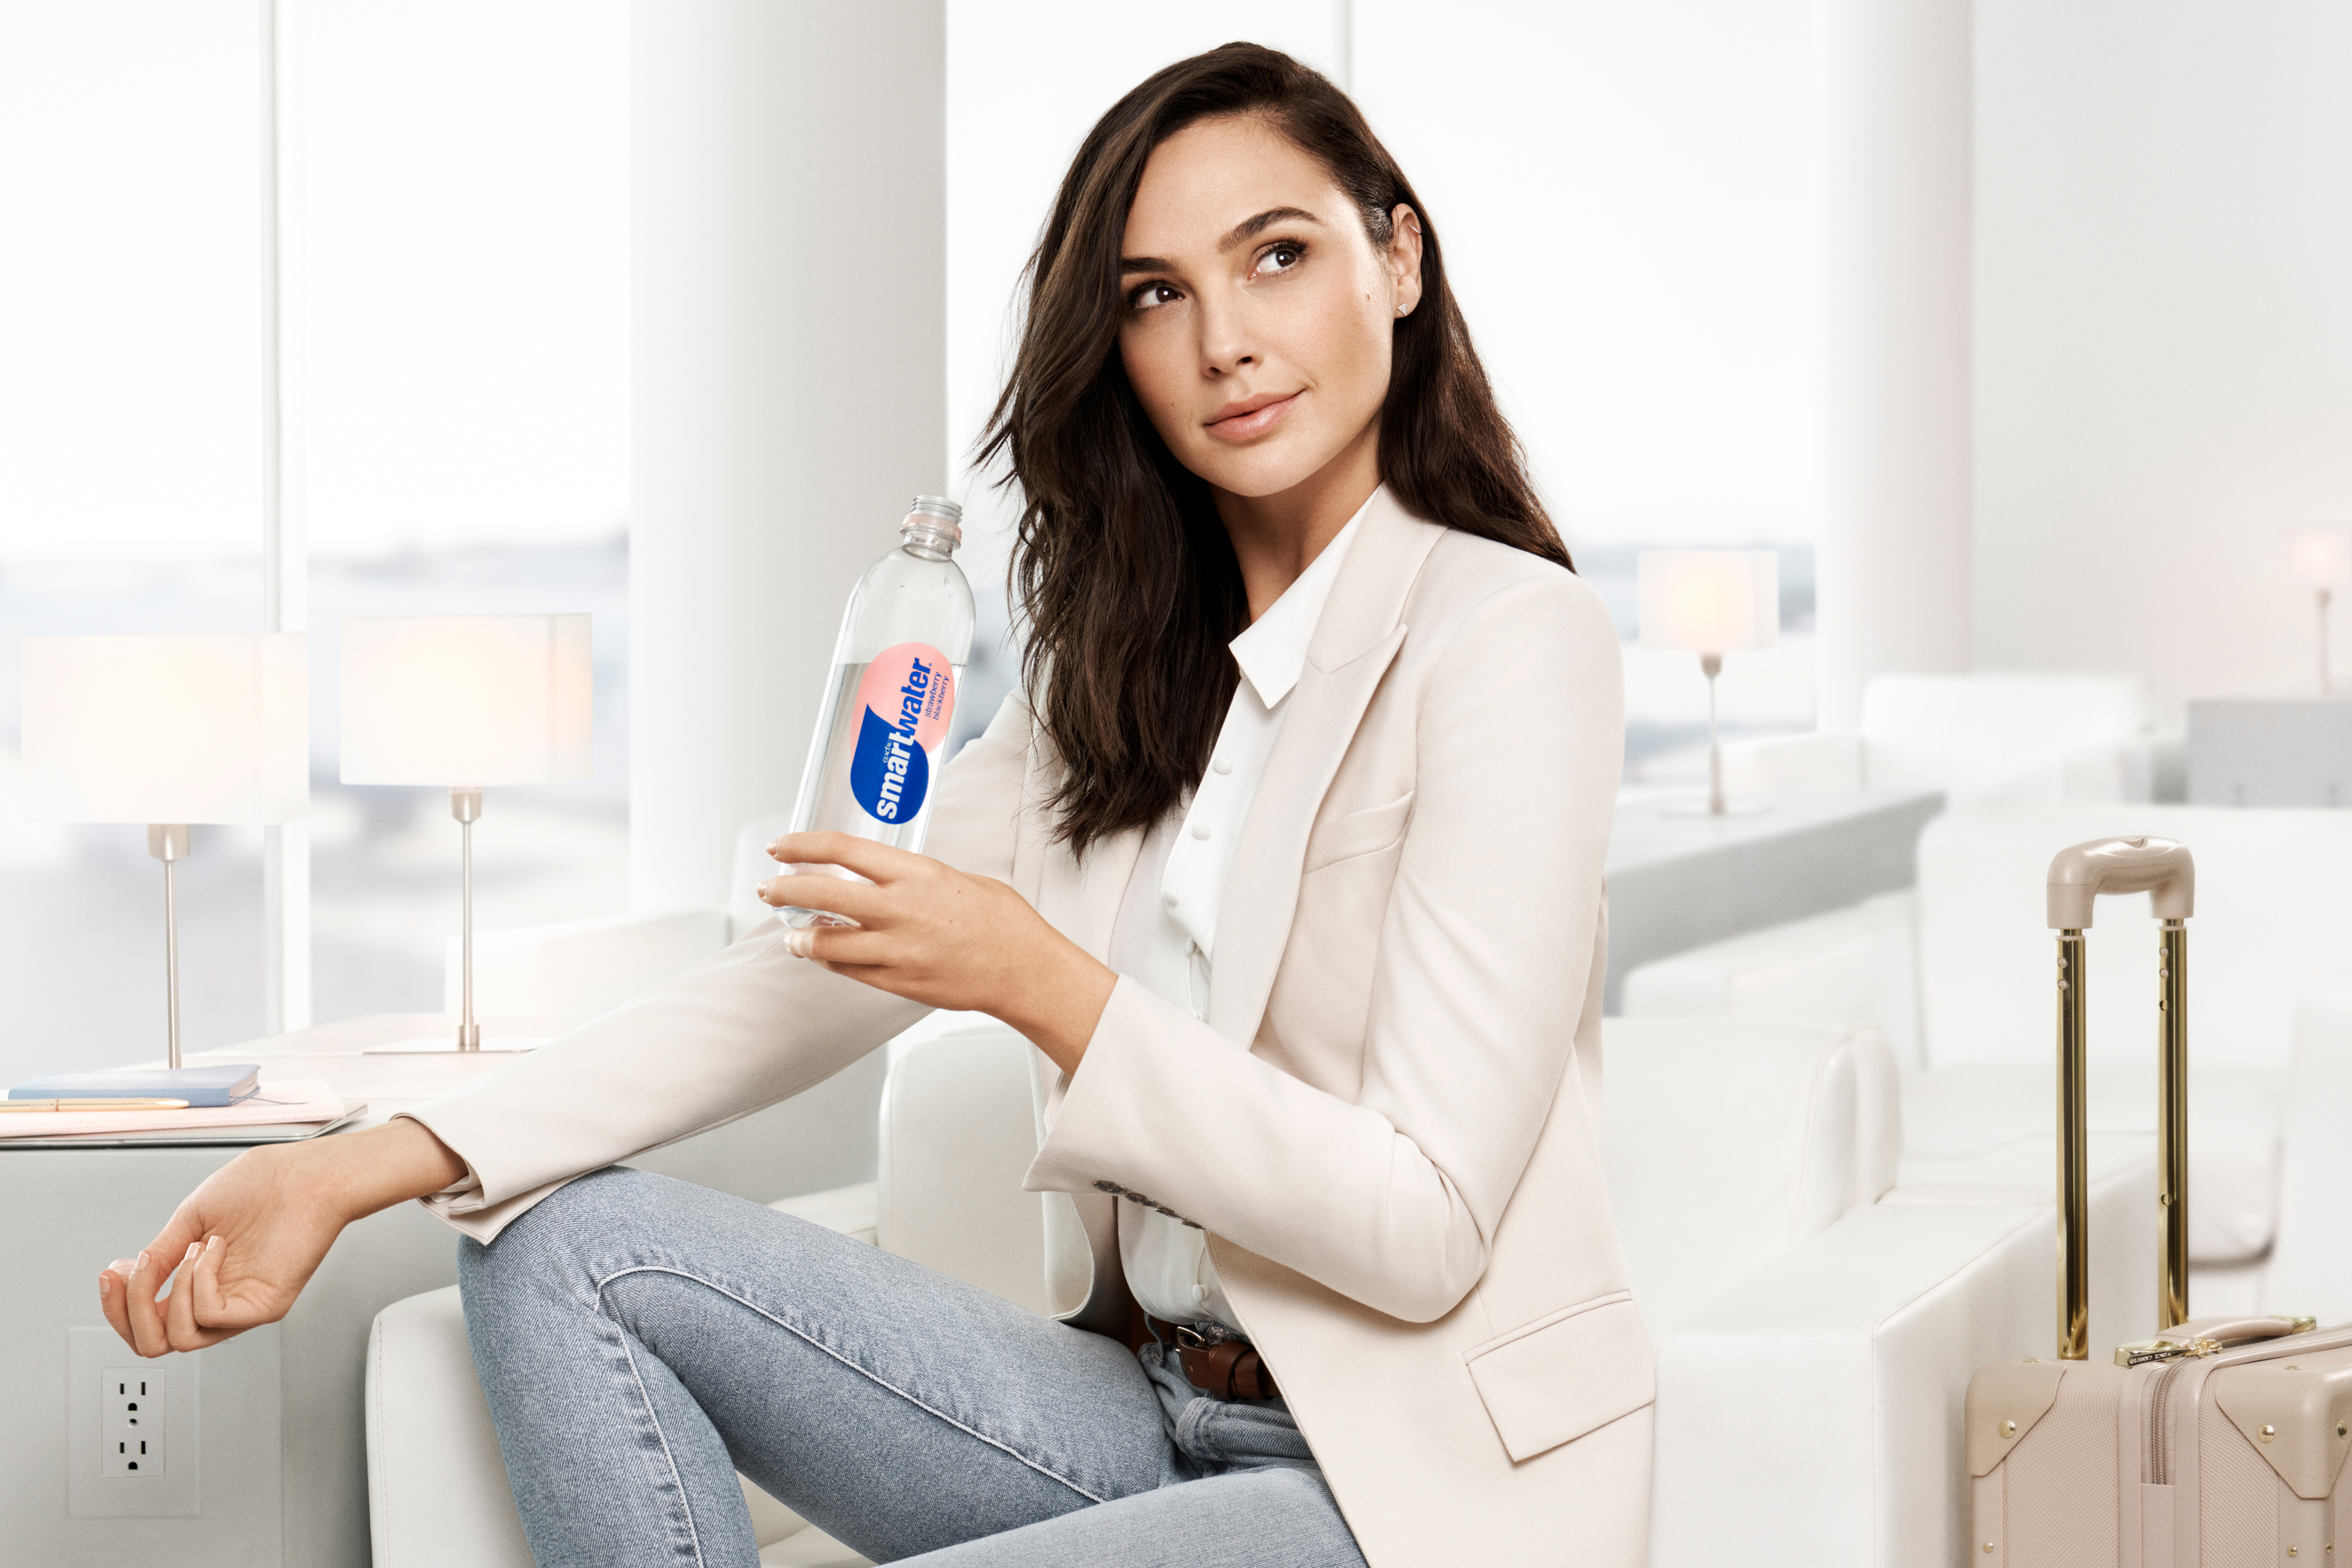 Smartwater Coca Cola North America CCNA Coke premium sparkling flavored water pineapple kiwi watermelon mint strawberry blackberry cucumber lime Gal Gadot Wonder Woman new partnership ad marketing video out of home ooh digital radio experiential TV television commercial Anomaly New York NY agency cr